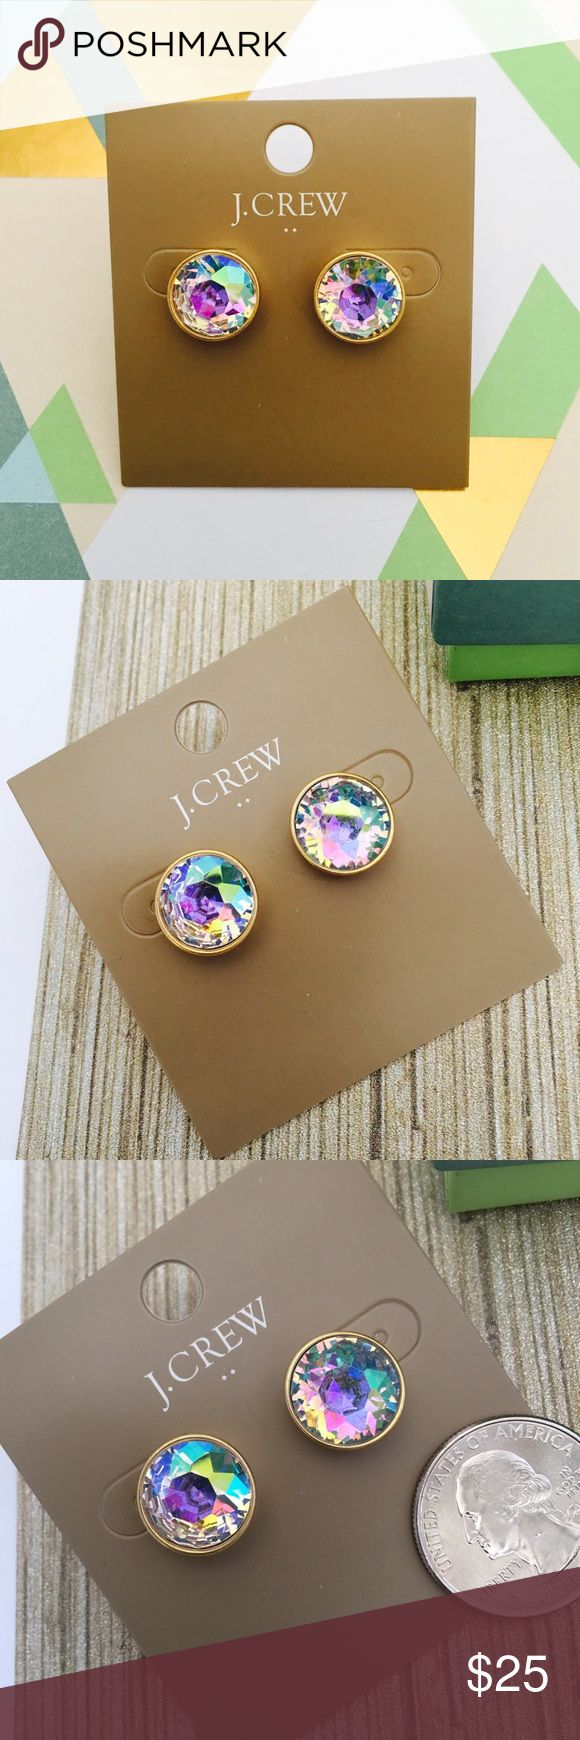 "J. Crew Iridescent Dot Earrings Gorgeous iridescent earrings. Factory item. Color: Buff Irridescent  * Zinc, glass stone, cubic zirconia. * Light gold ox plating. * 9/16""W. J. Crew Jewelry Earrings"